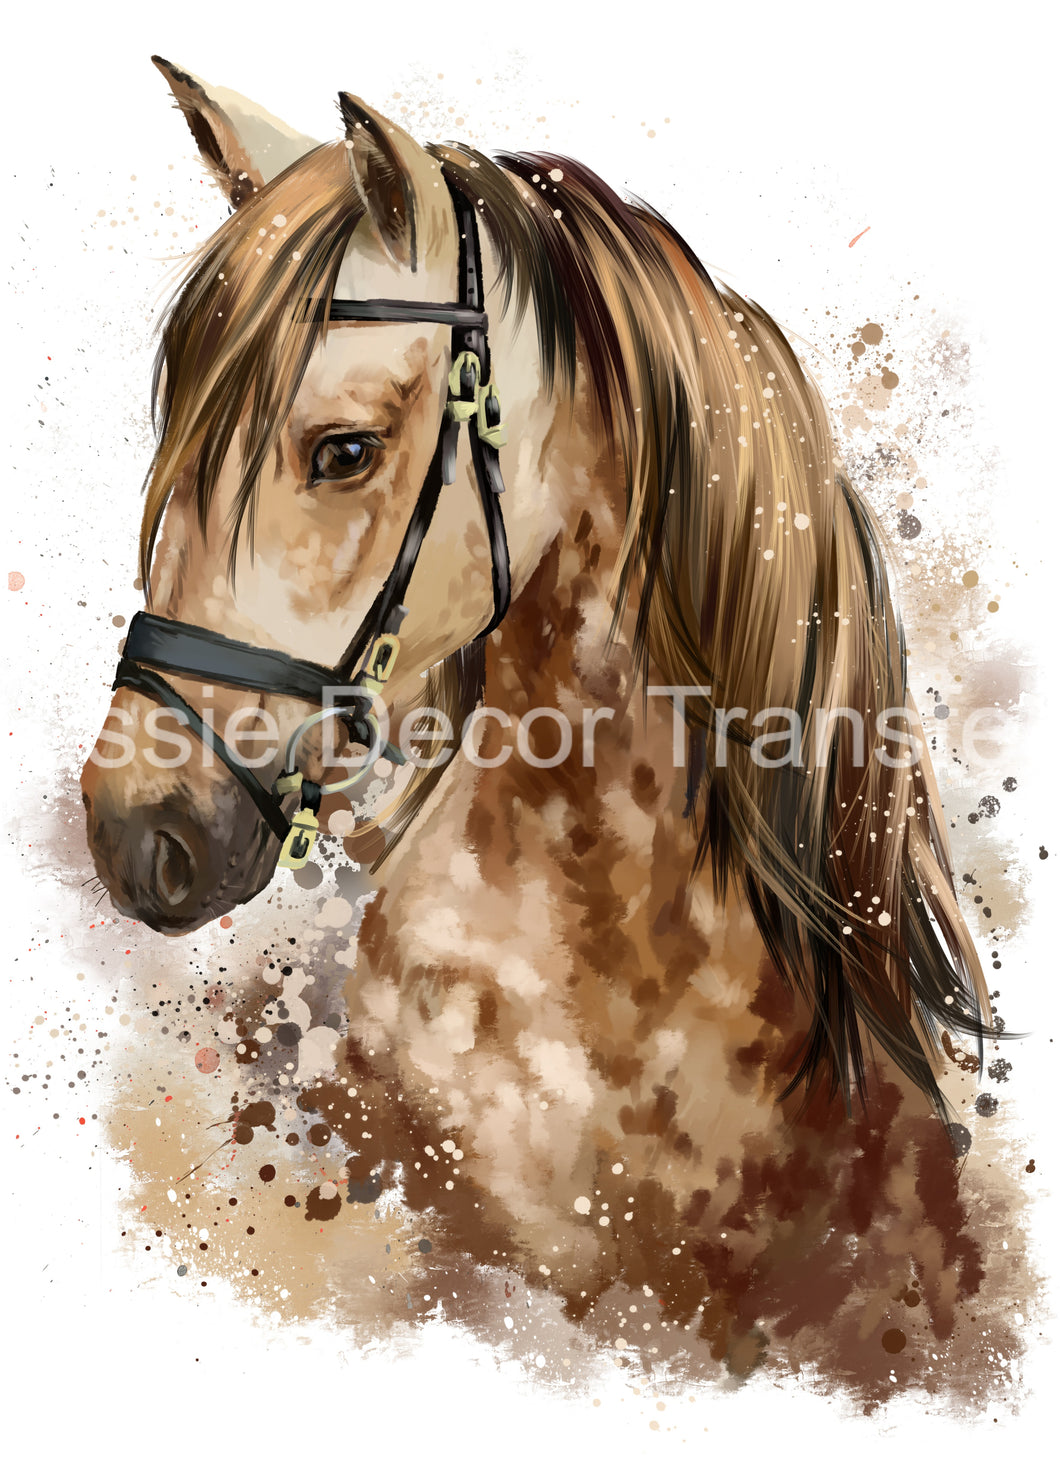 Dappled Brown Watercolour Horse A3 Poster Print available AUS ONLY atm